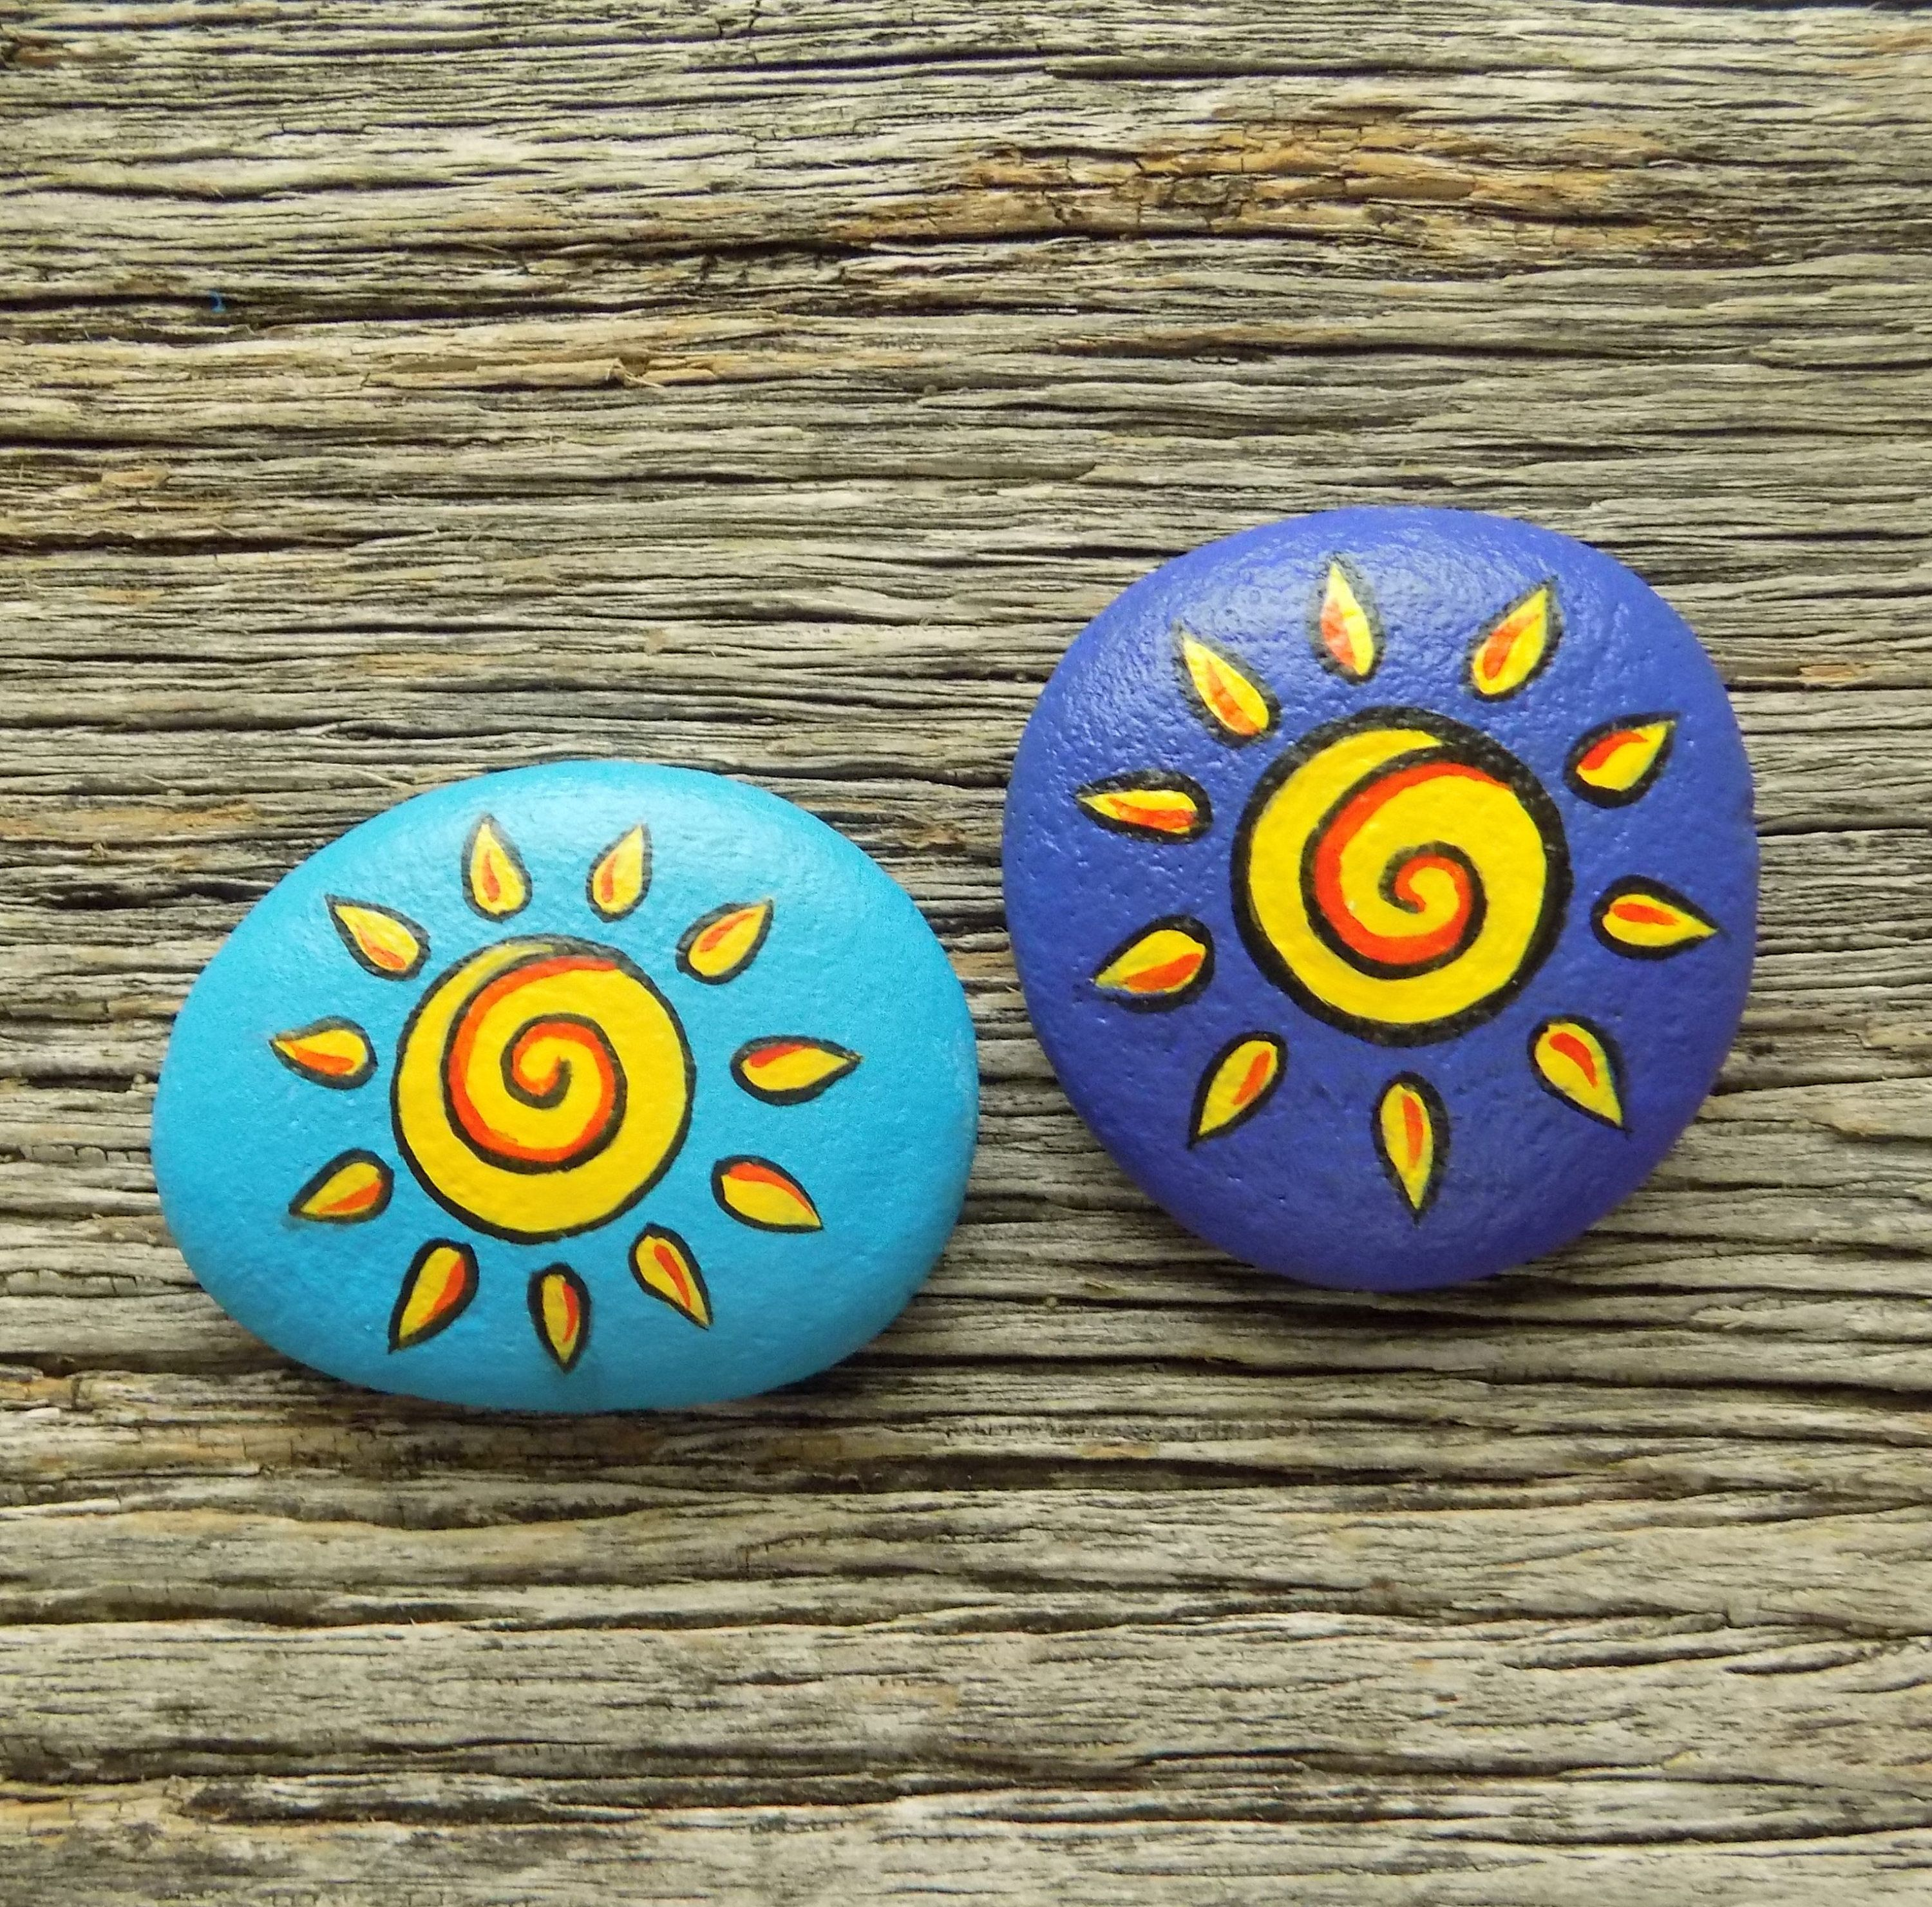 Sun Painted Rocks Decorative Accent Stone Paperweight By